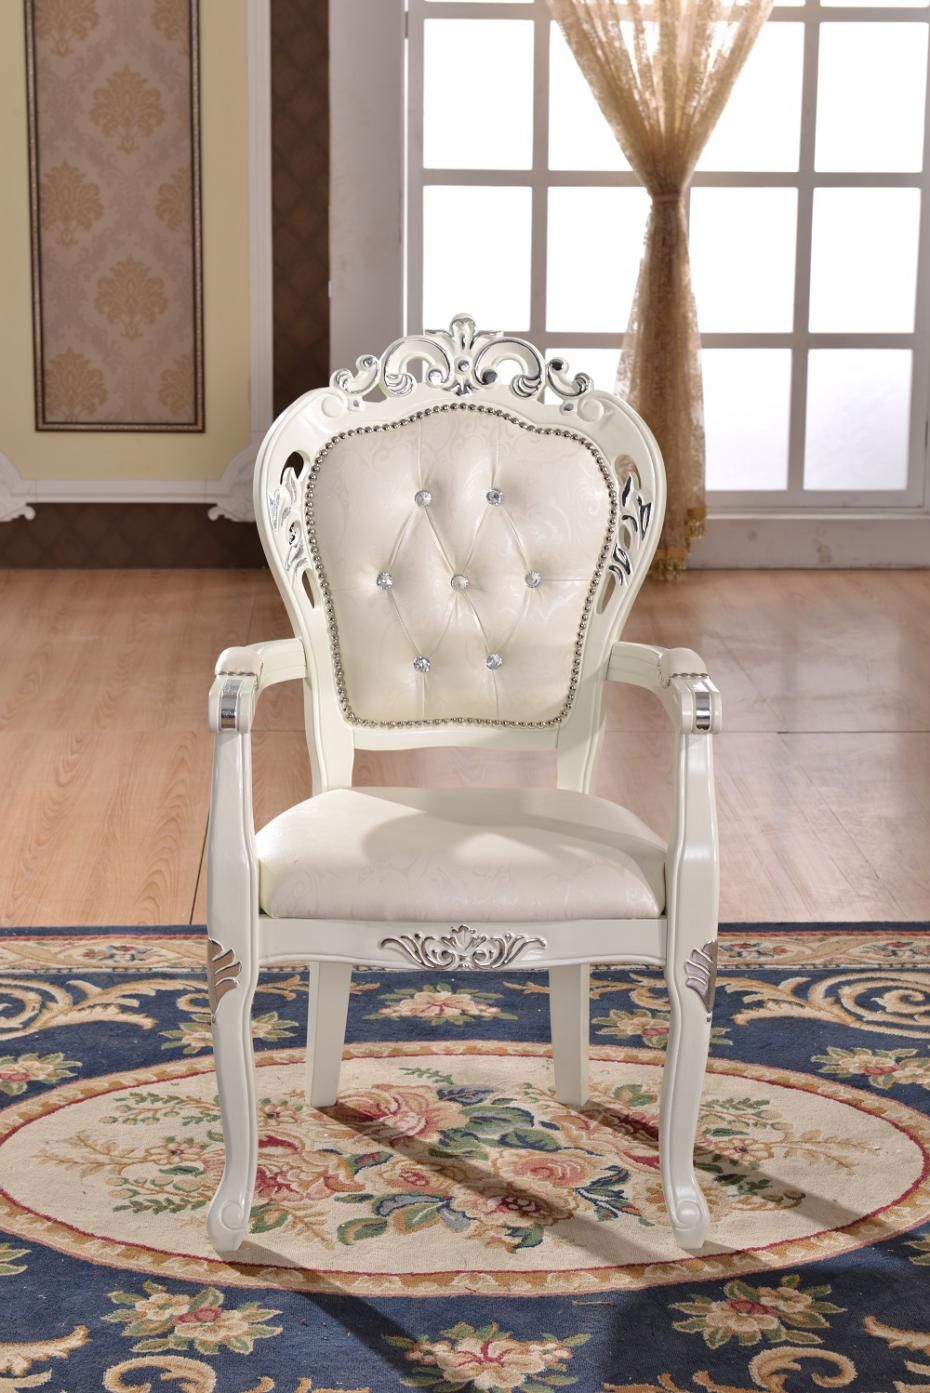 77 Antique White Office Chair Used Home Furniture Check More At Http